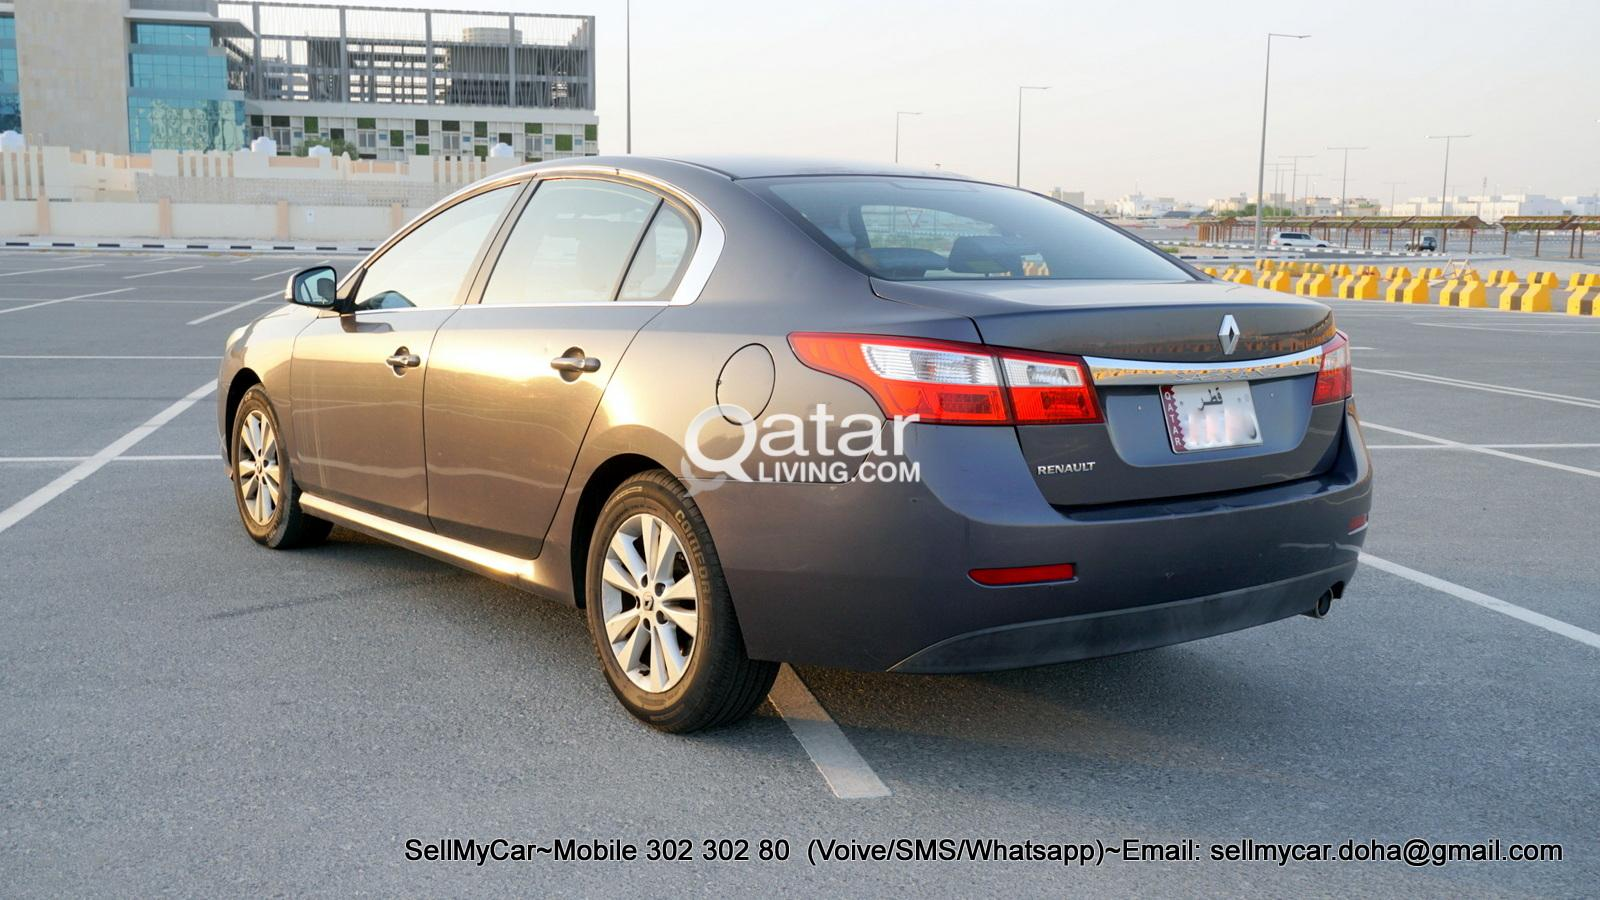 2012 Renault Safrane (More Photos Available Upon R